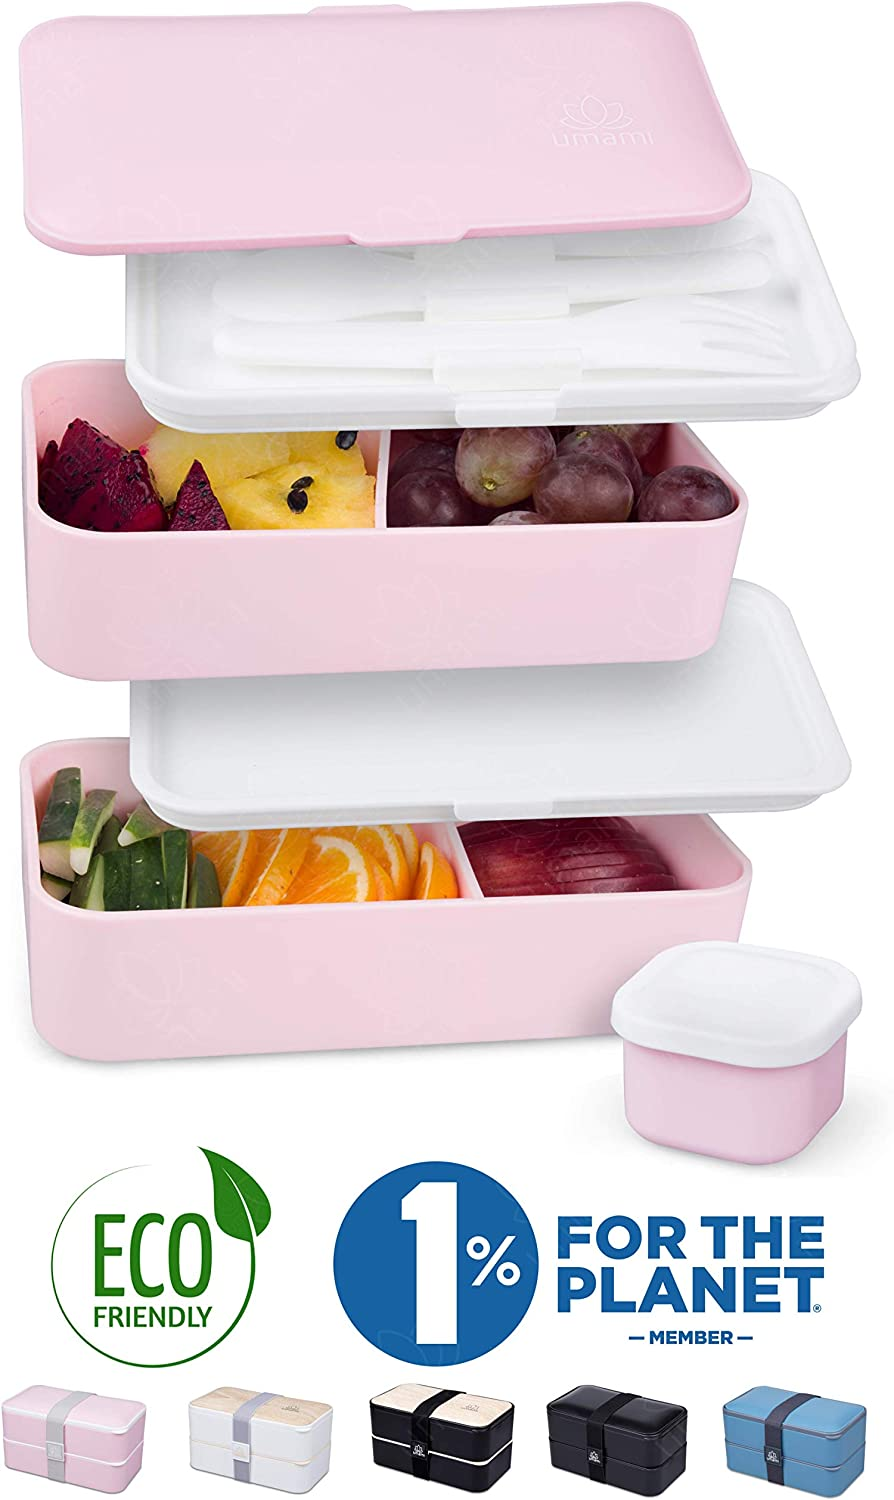 Umami ⭐ Bento Lunch Box for Adults/Children - Includes 1 Sauce Pot & Cutlery 3 Pieces - Japanese Hermetic Box - 2 Compartments - Meals at Home/Work - Meal Prep - Micro-Waves & Dishwasher & Freezer